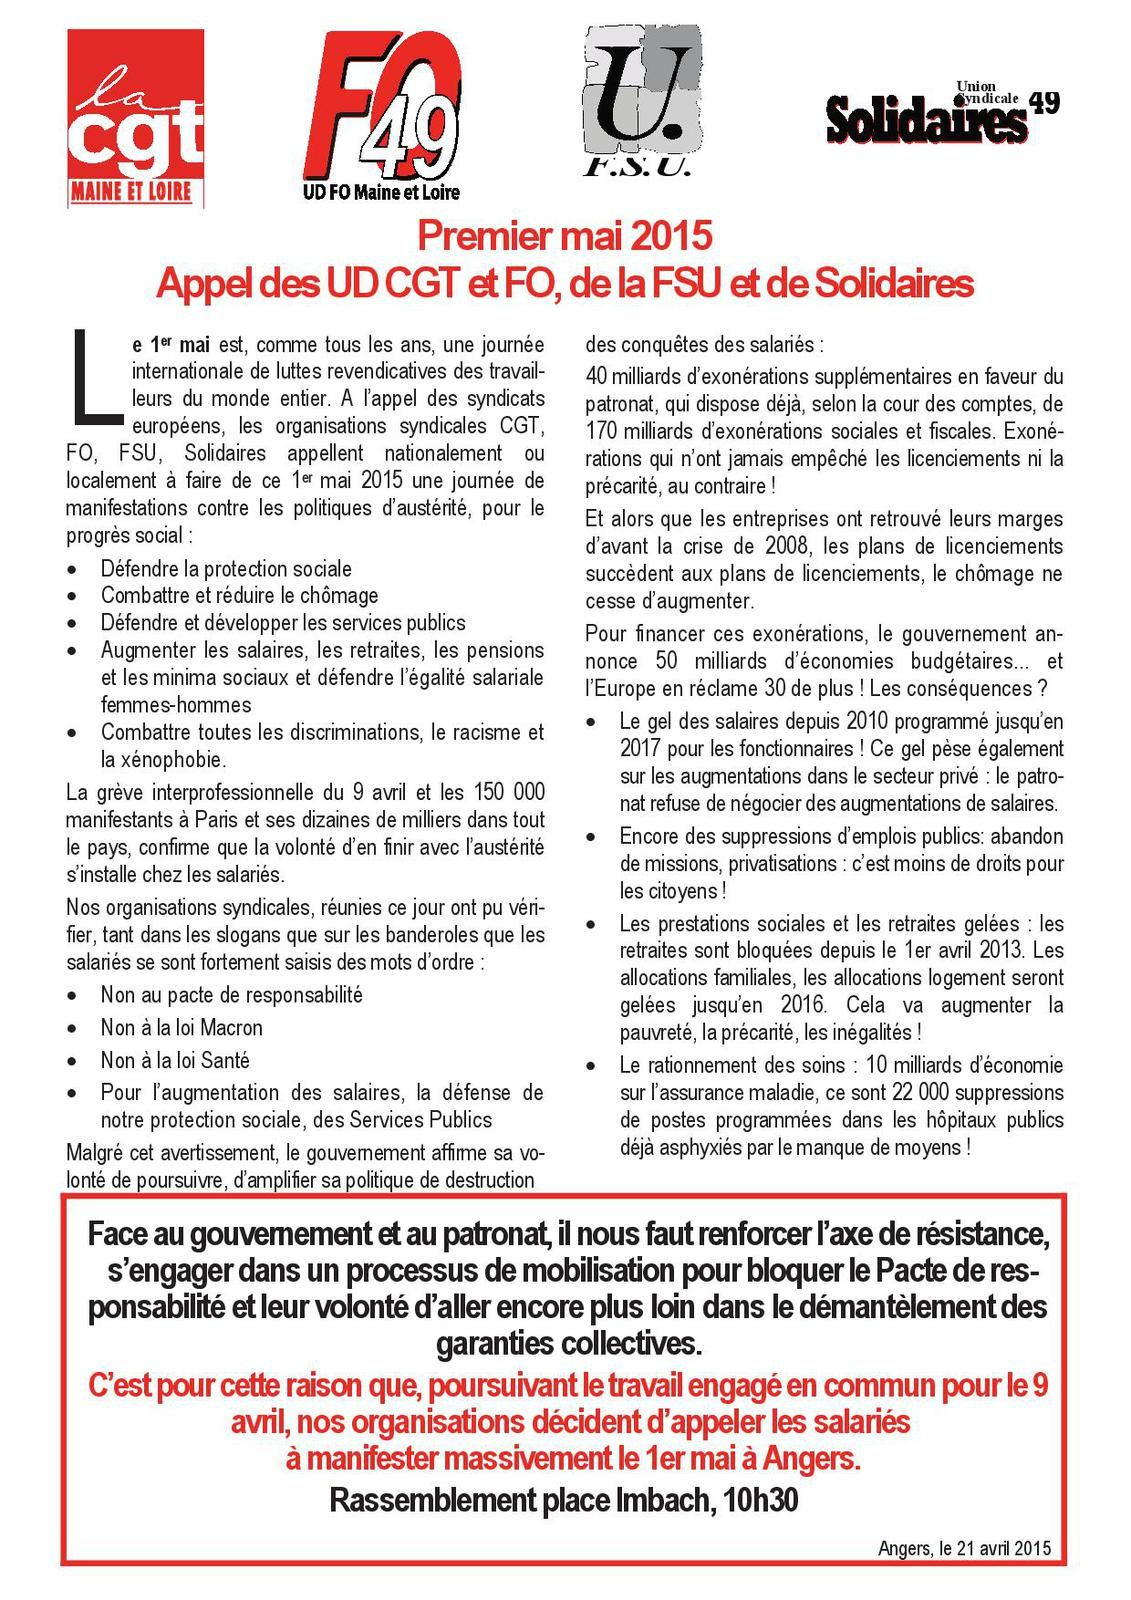 Tract appel commun Cgt, Fo, Fsu & Solidaires.